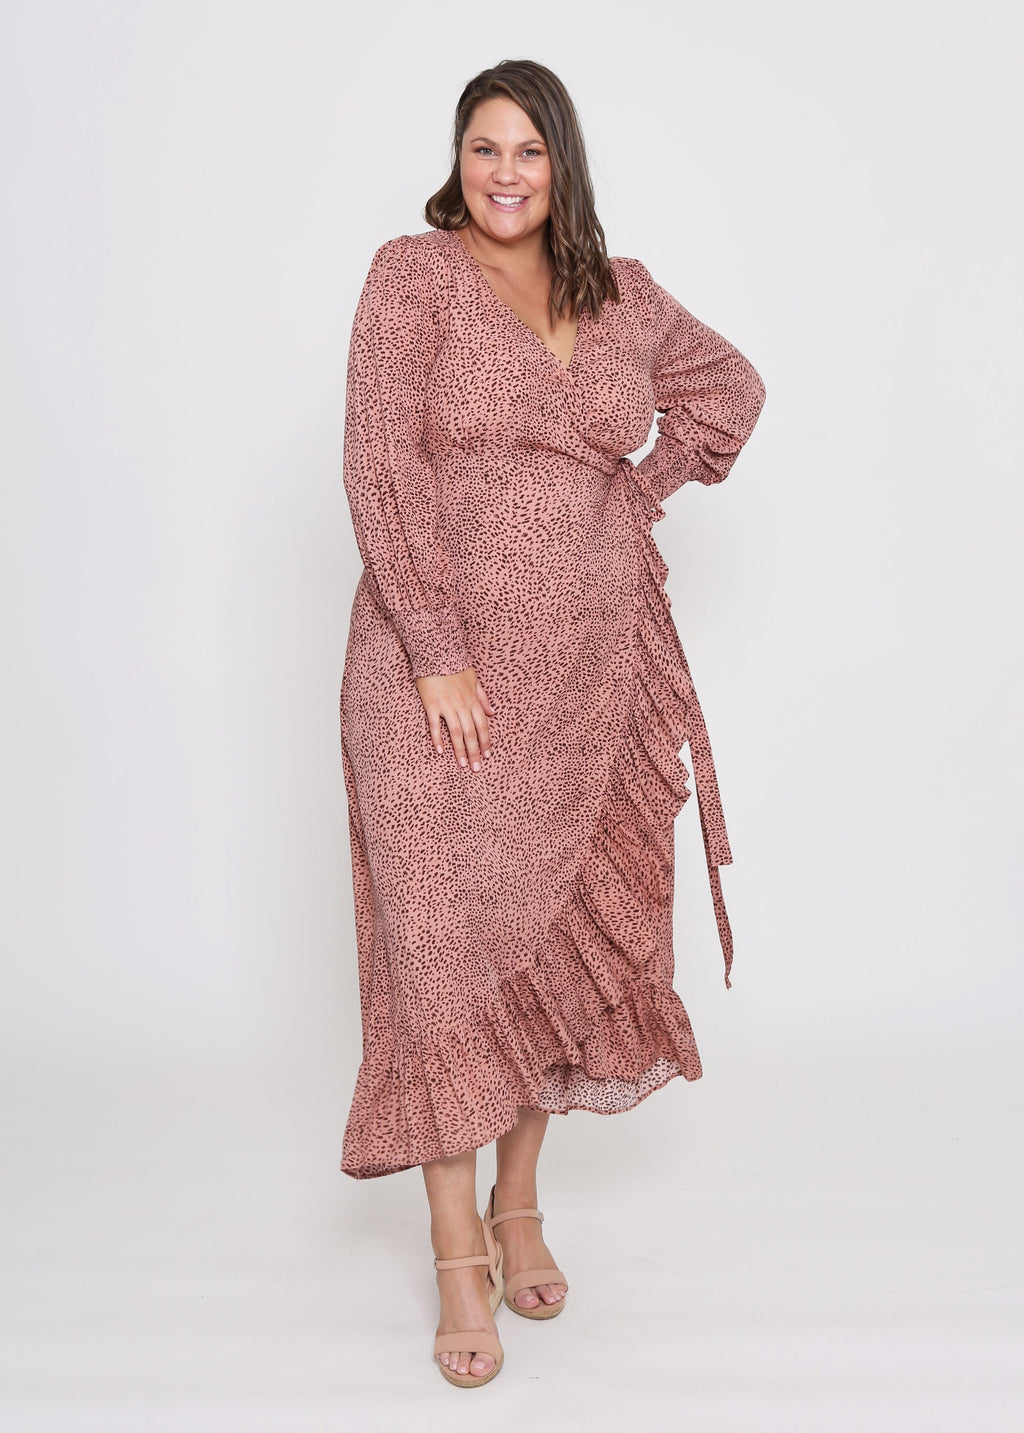 AMELIA WRAP DRESS - BLUSH LEOPARD PRINT